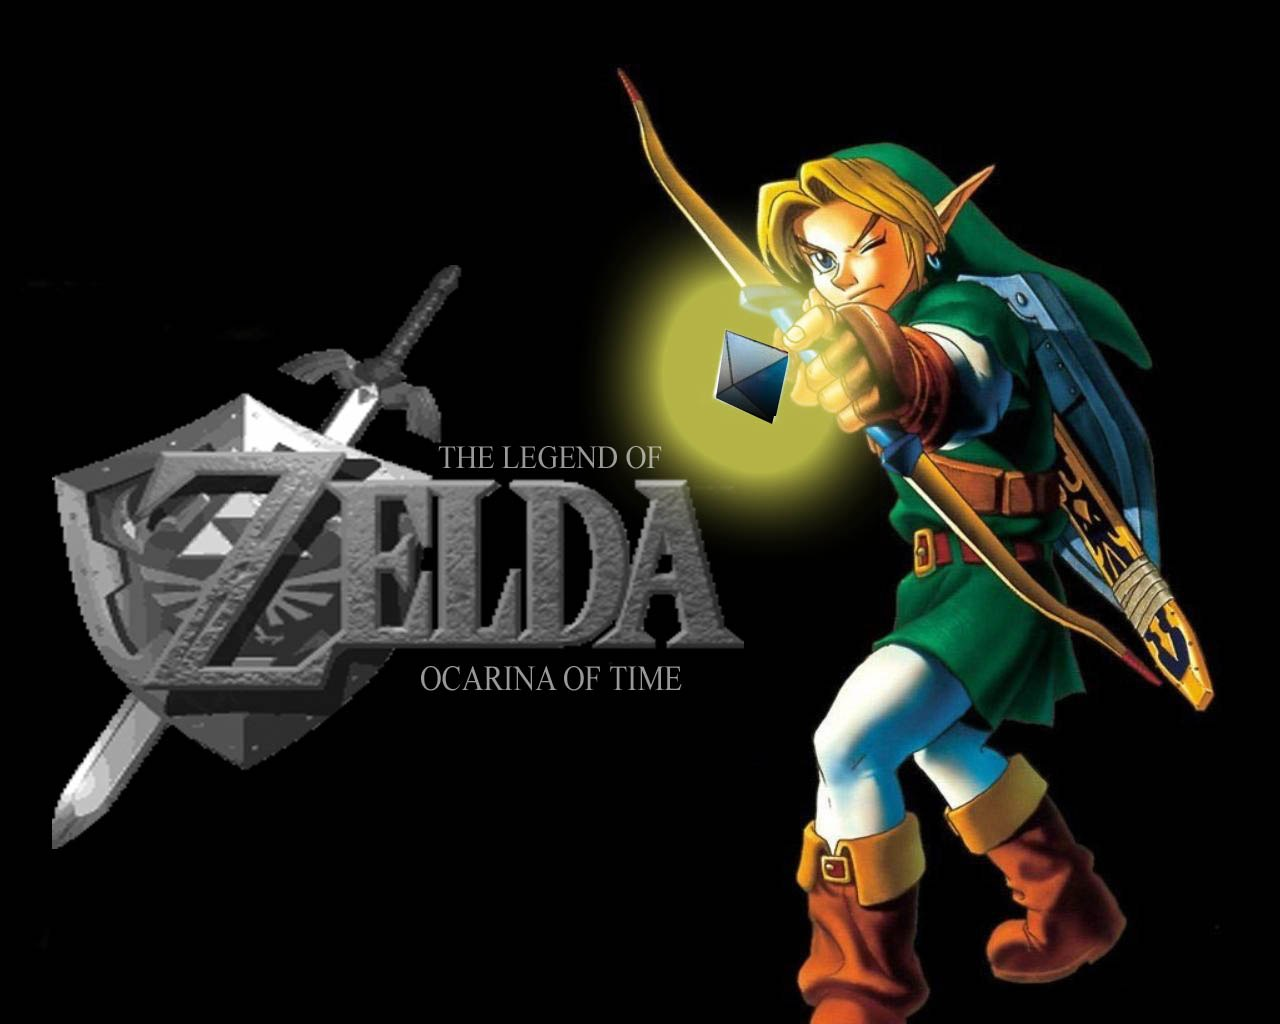 Zelda Ocarina Of Time Wallpapers 27 Wallpapers Adorable